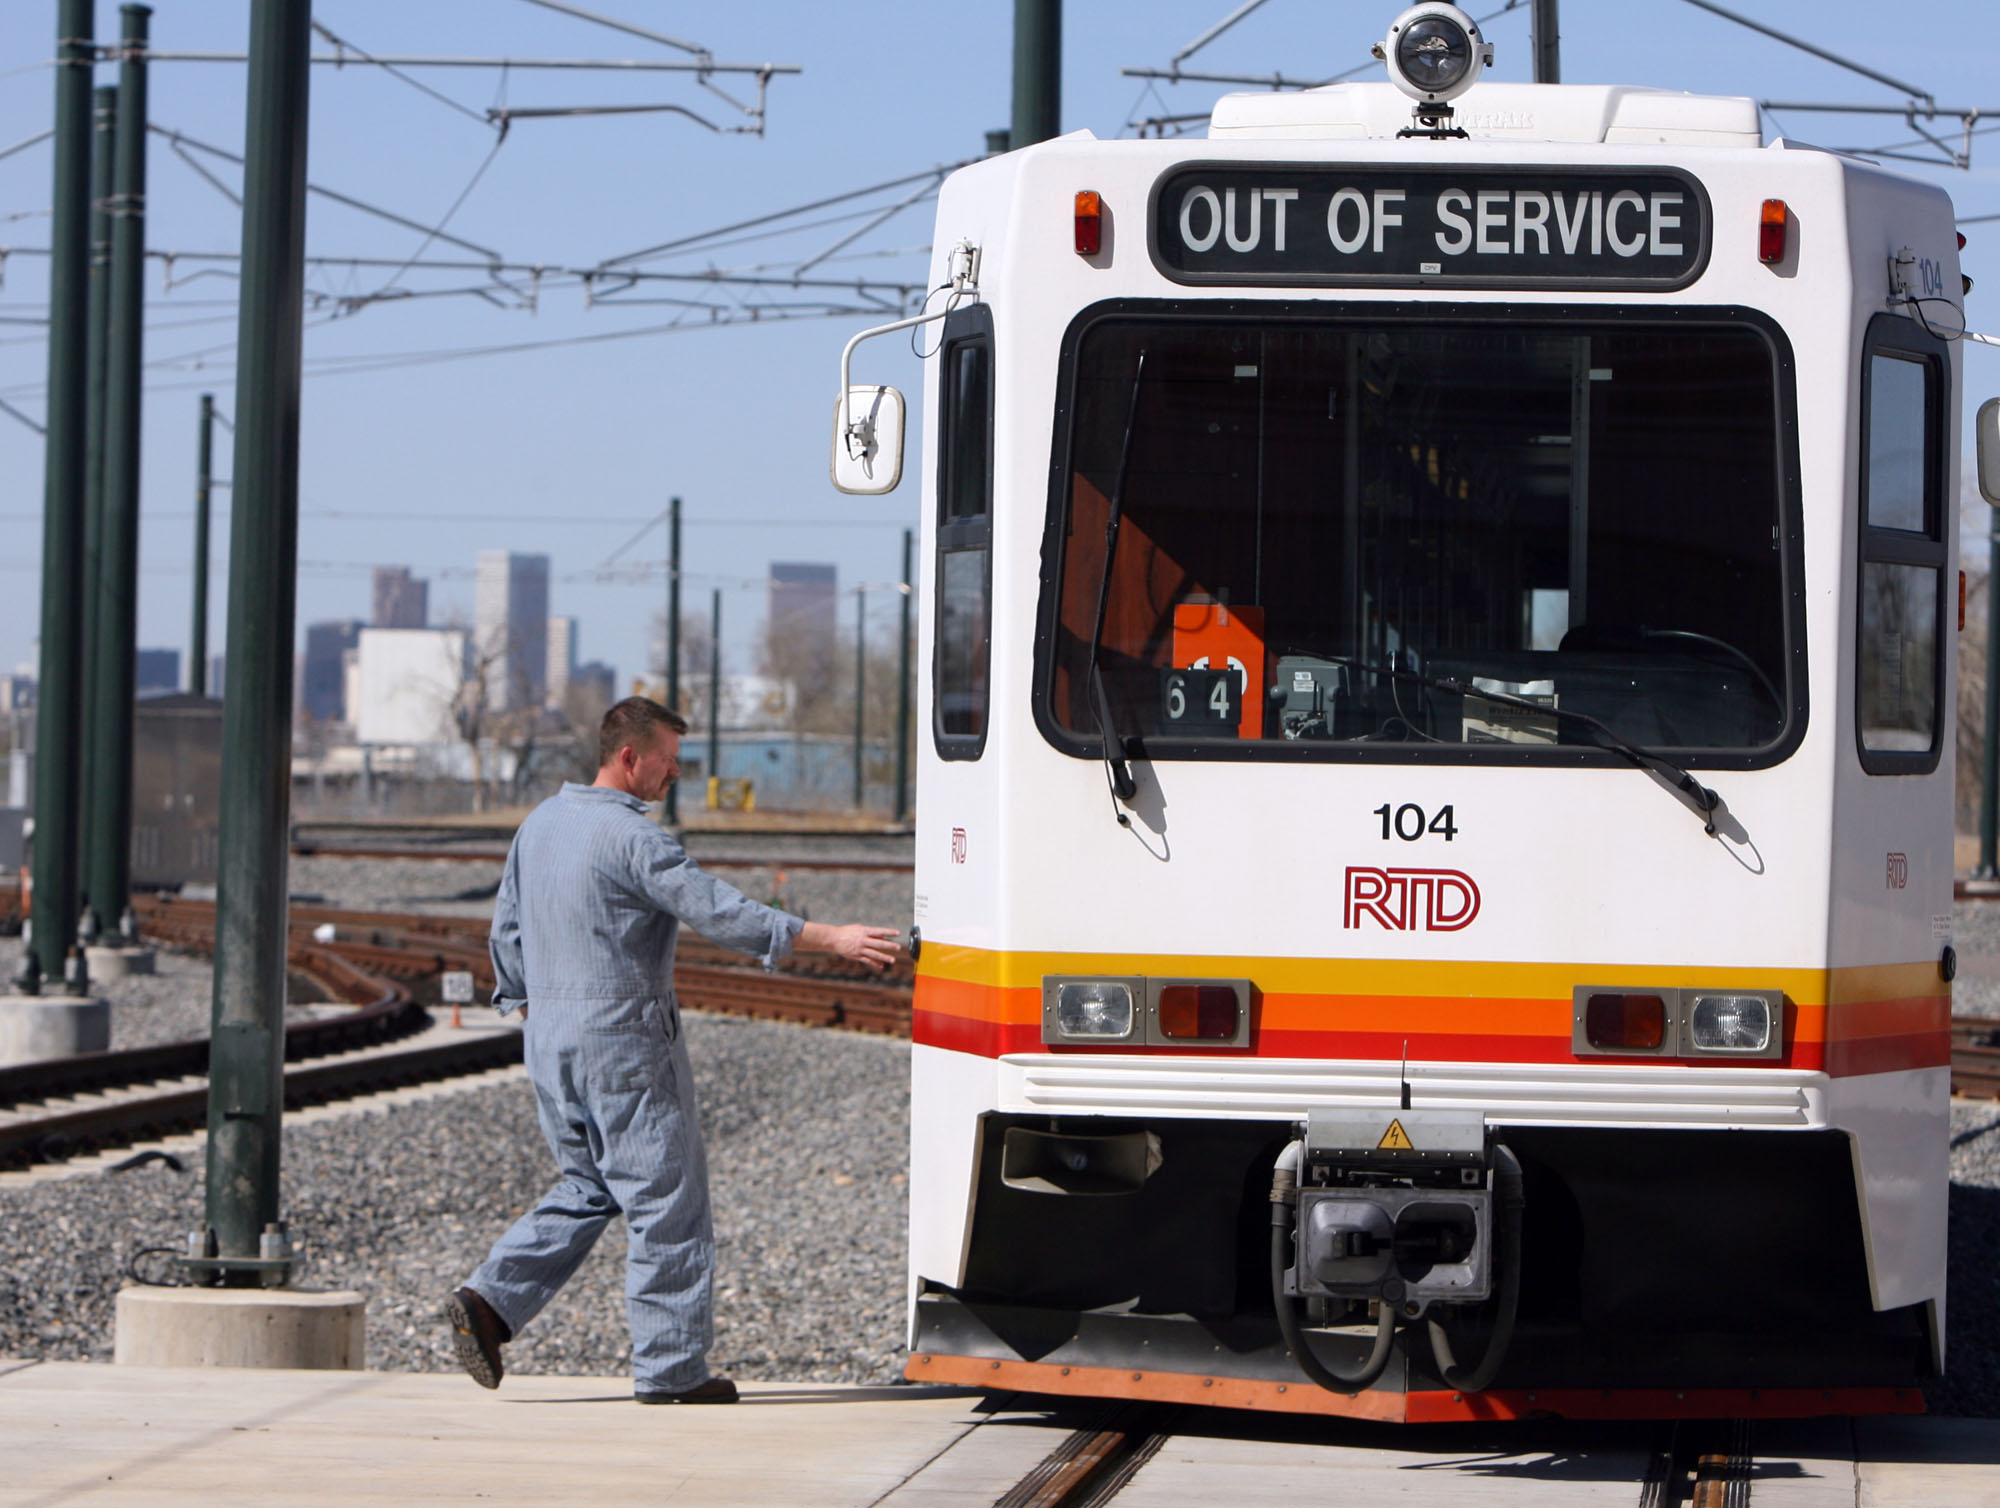 Photo: RTD light rail car